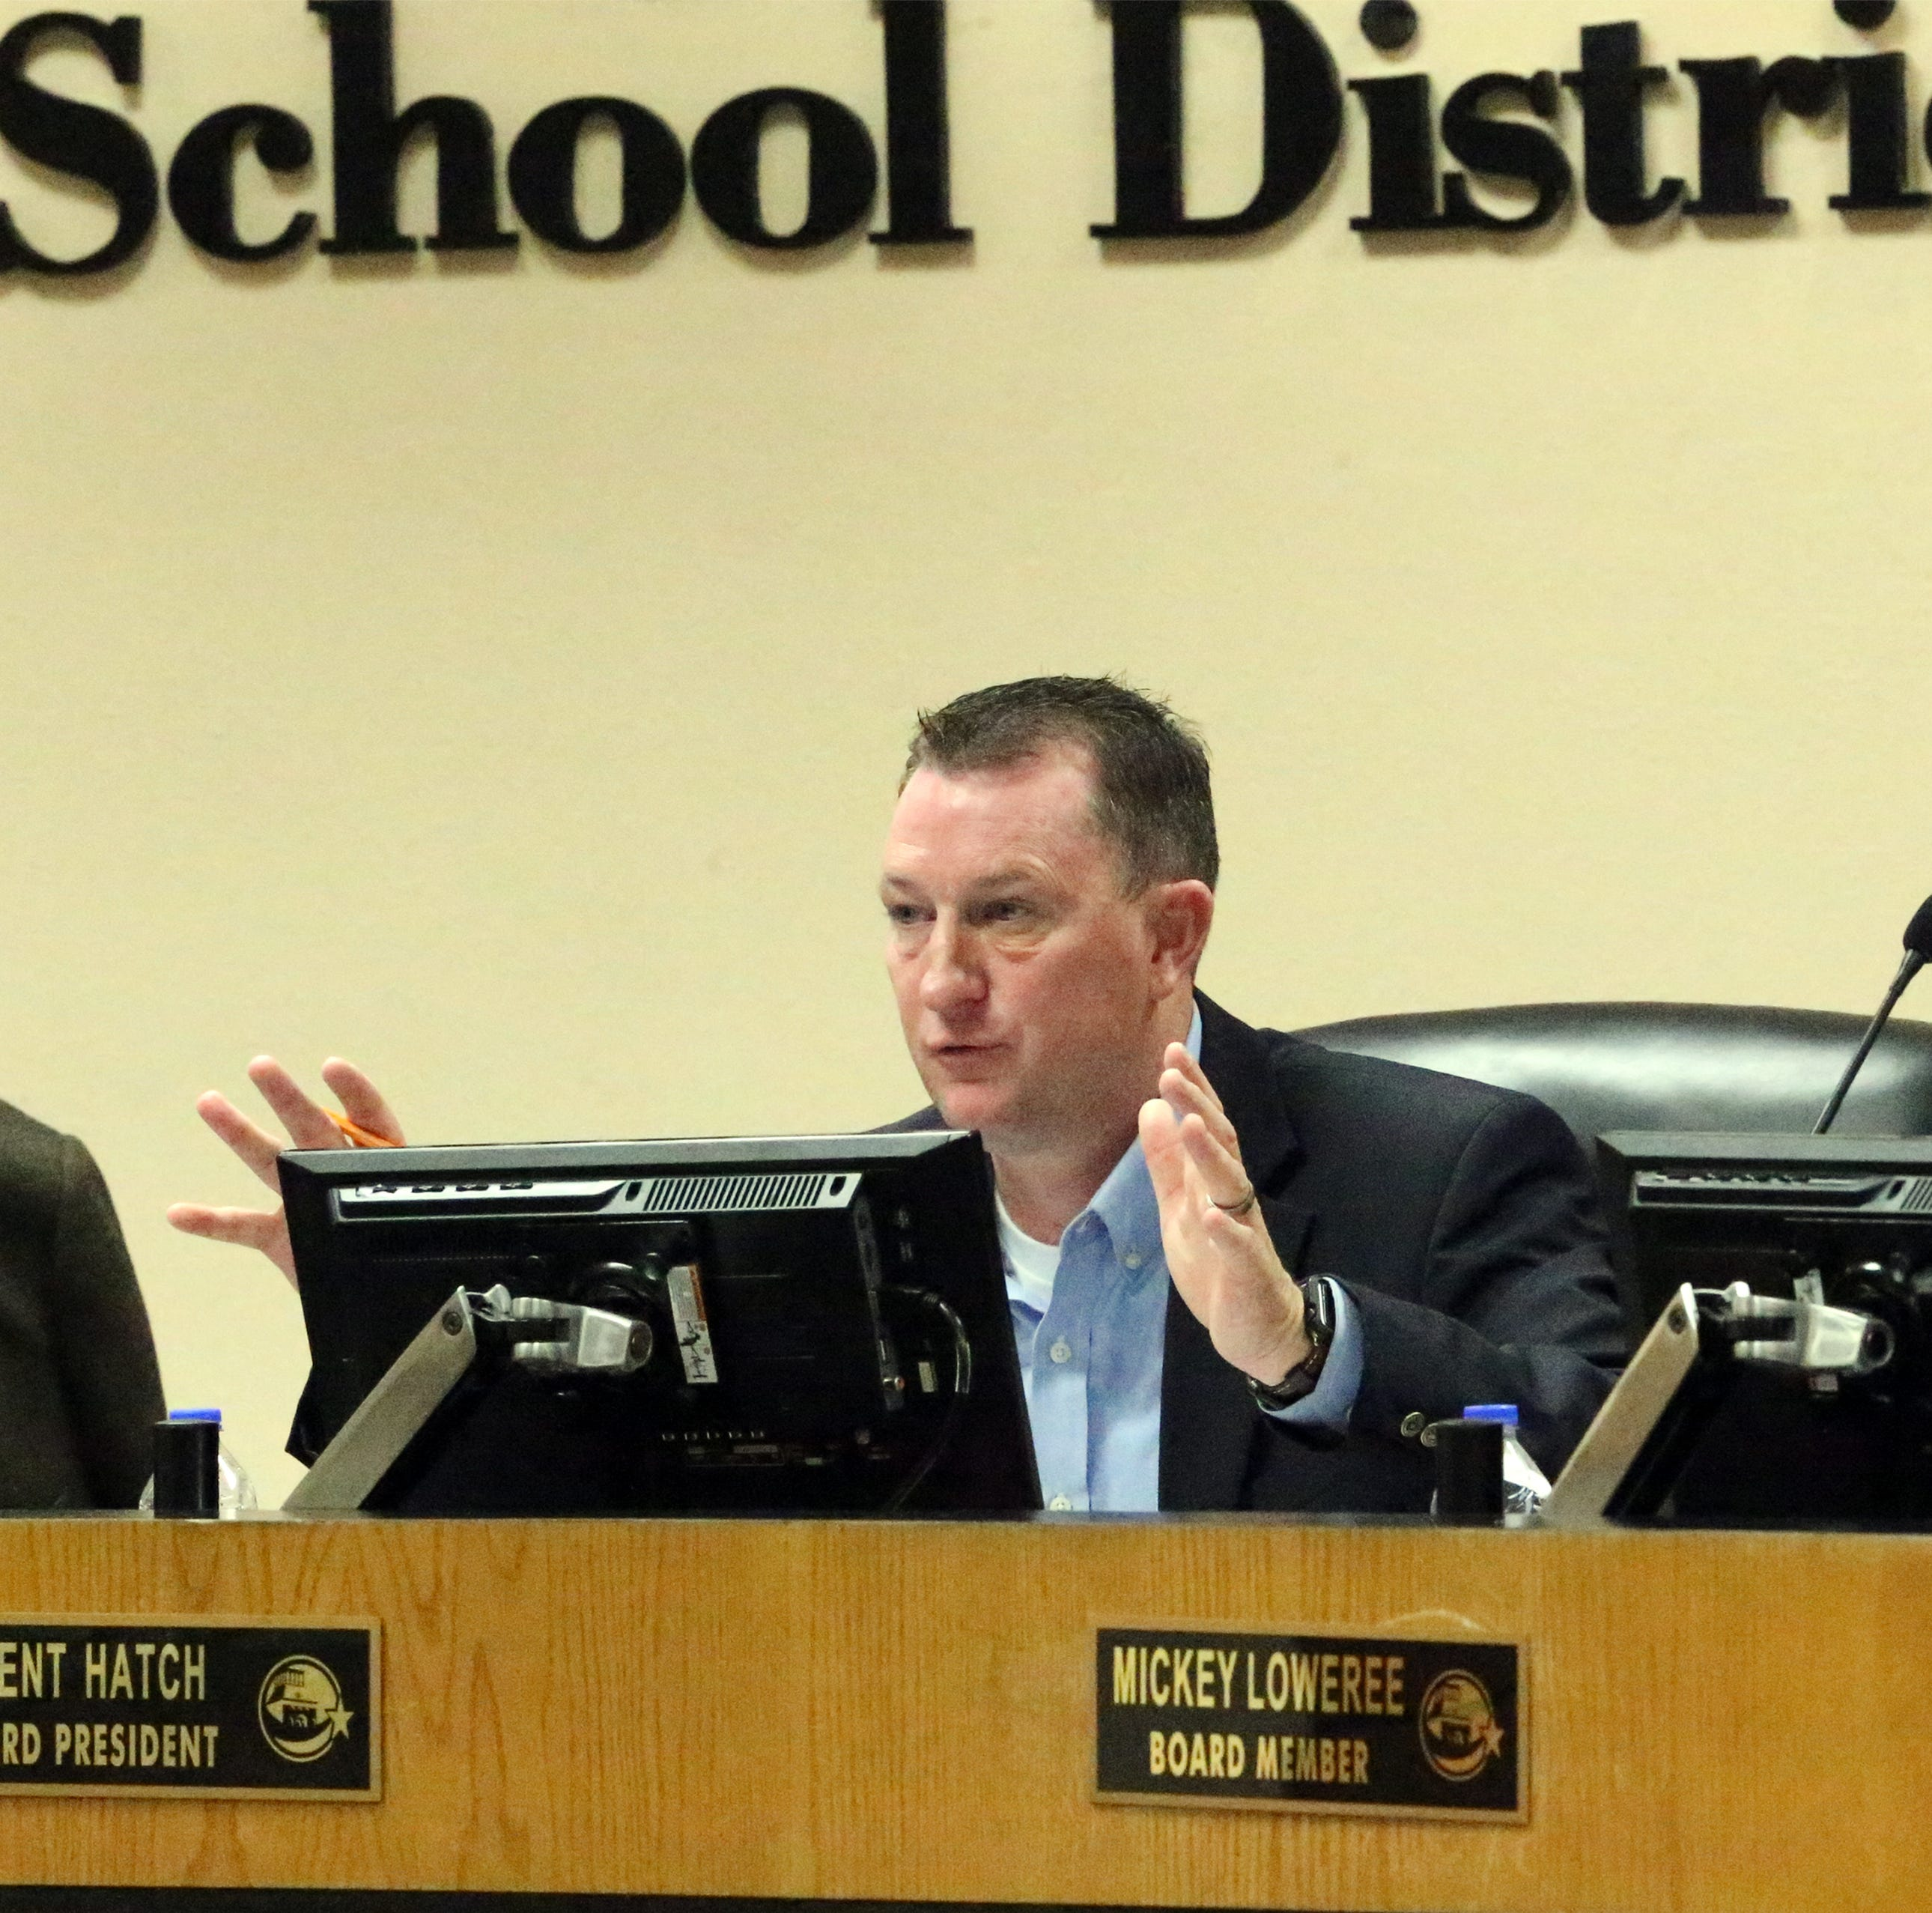 EPISD board president Trent Hatch had been rejected to run for seat he eventually won